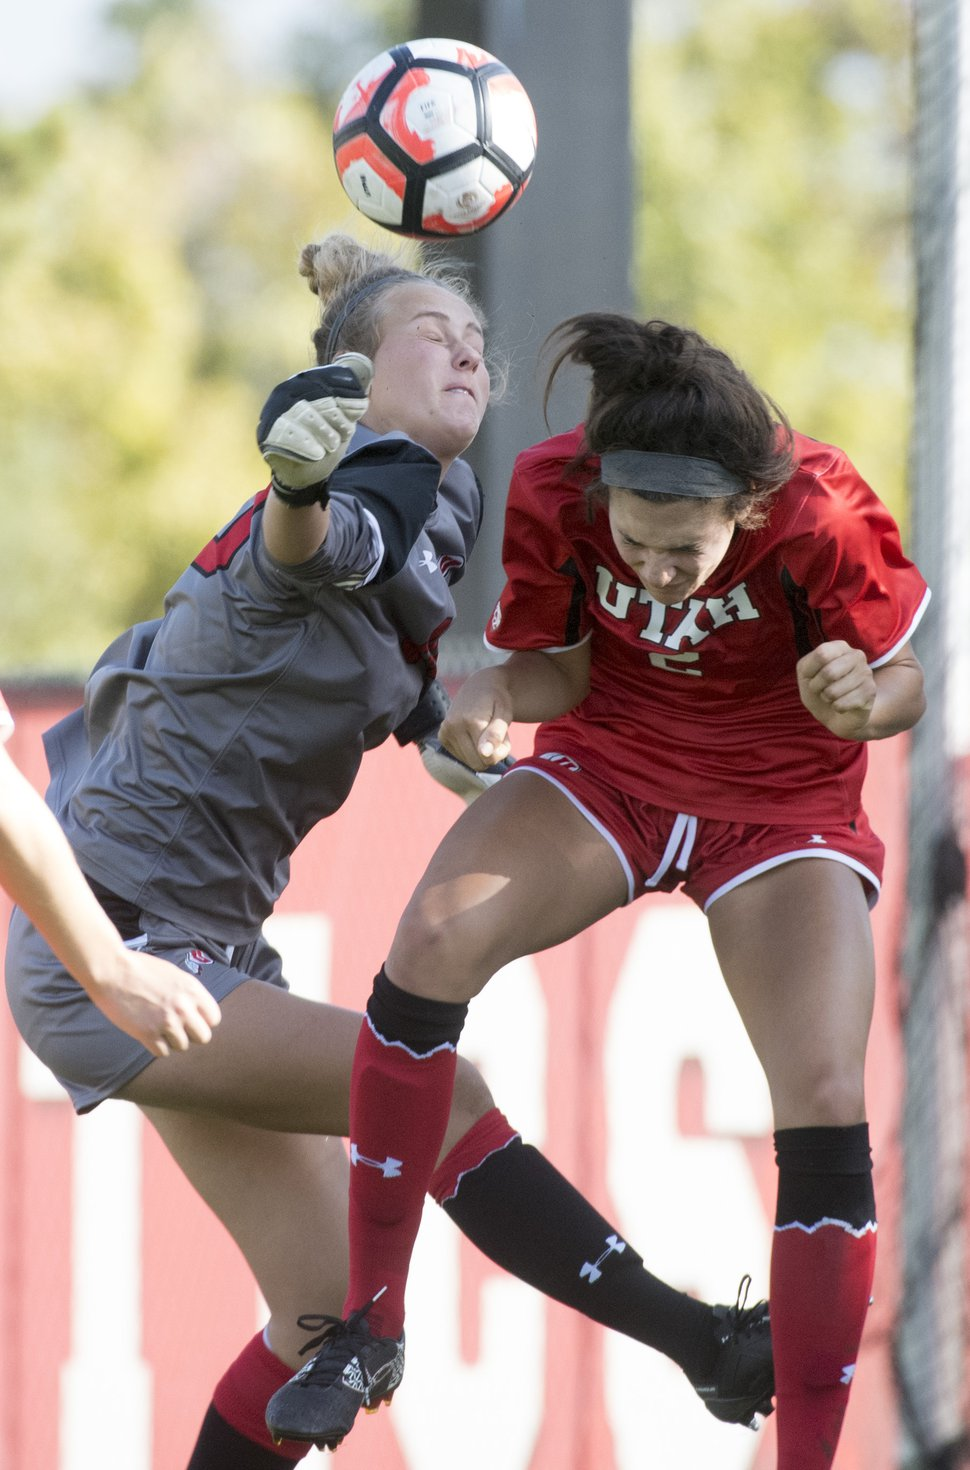 Rick Egan | The Salt Lake Tribune file photo Utah goalkeeper Carly Nelson (00) and Tavia Leachman (2) defend the goal, in soccer action, BYU vs. Utah, at the Ute soccer field, Monday, September 5, 2016.